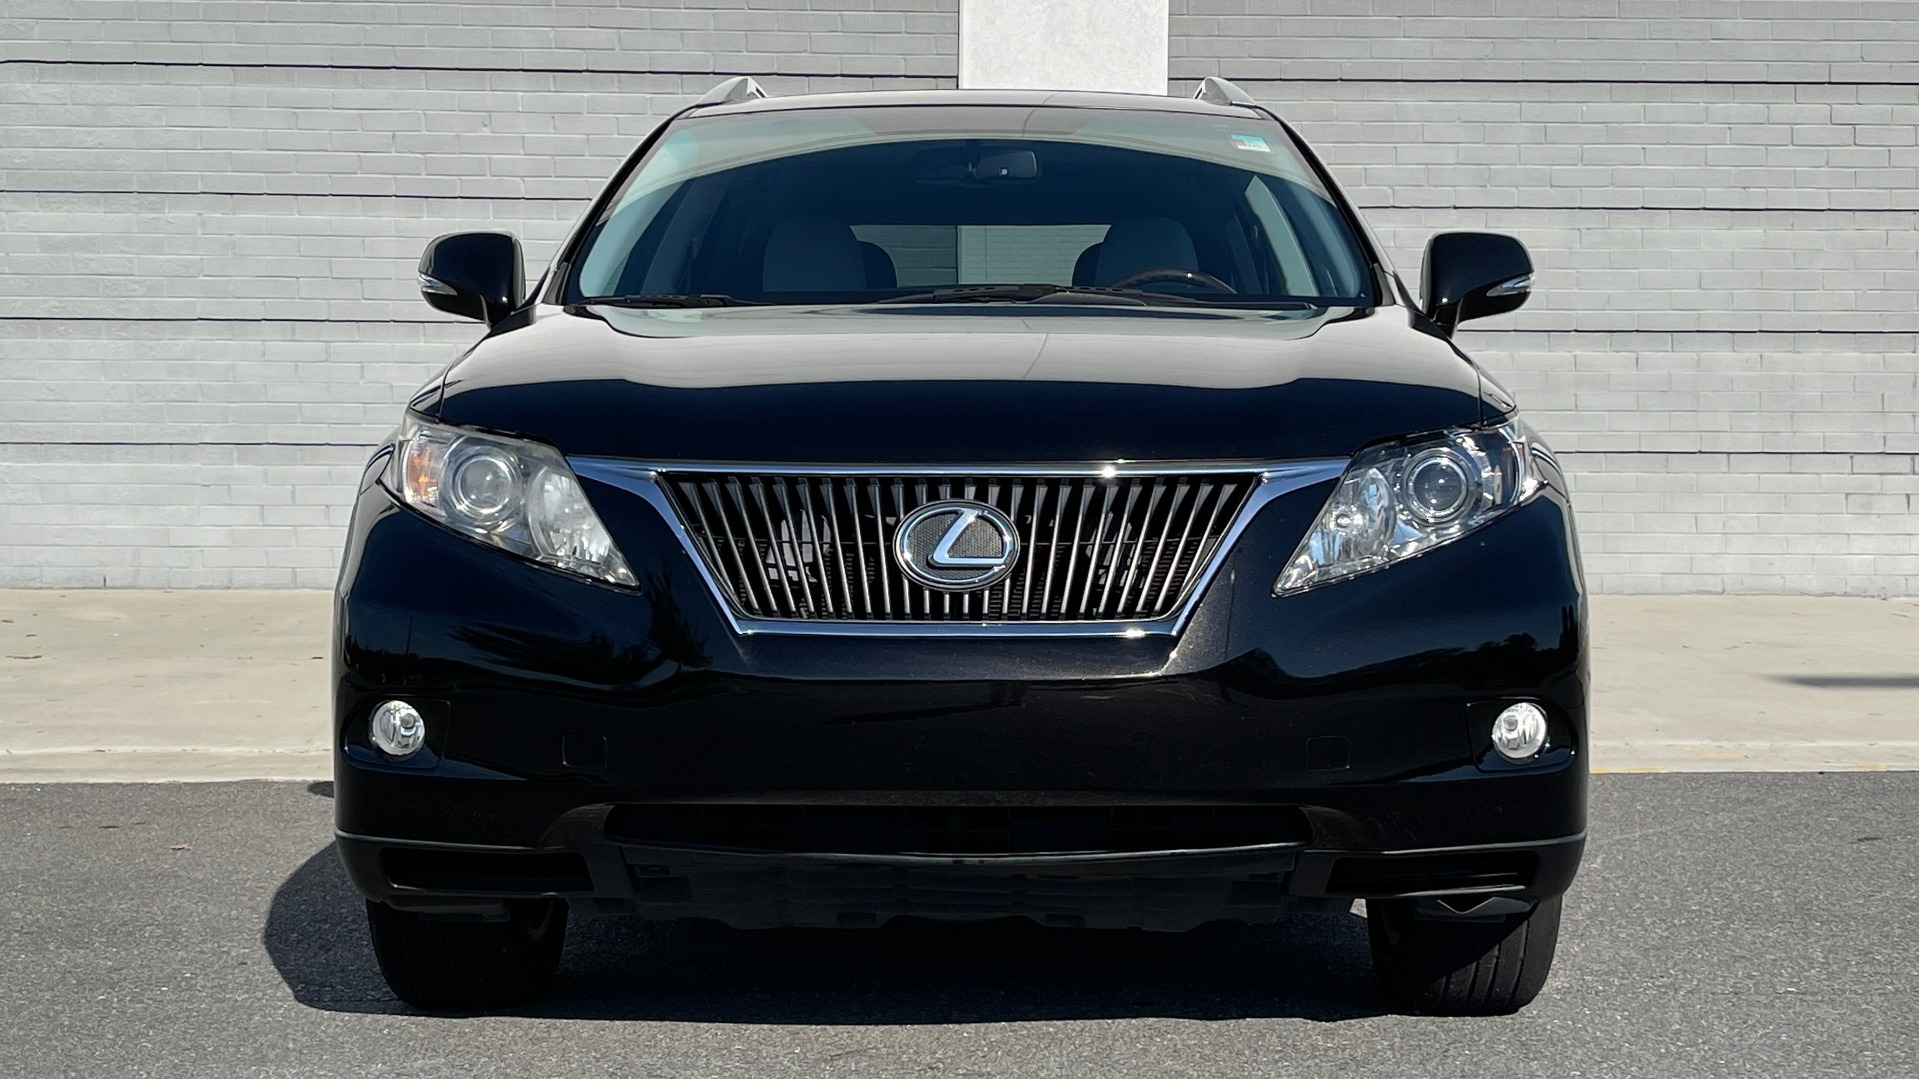 Used 2011 Lexus RX 350 PREMIUM / TOWING PREP PKG / VENTILATED STS / SUNROOF / REARVIEW for sale Sold at Formula Imports in Charlotte NC 28227 8